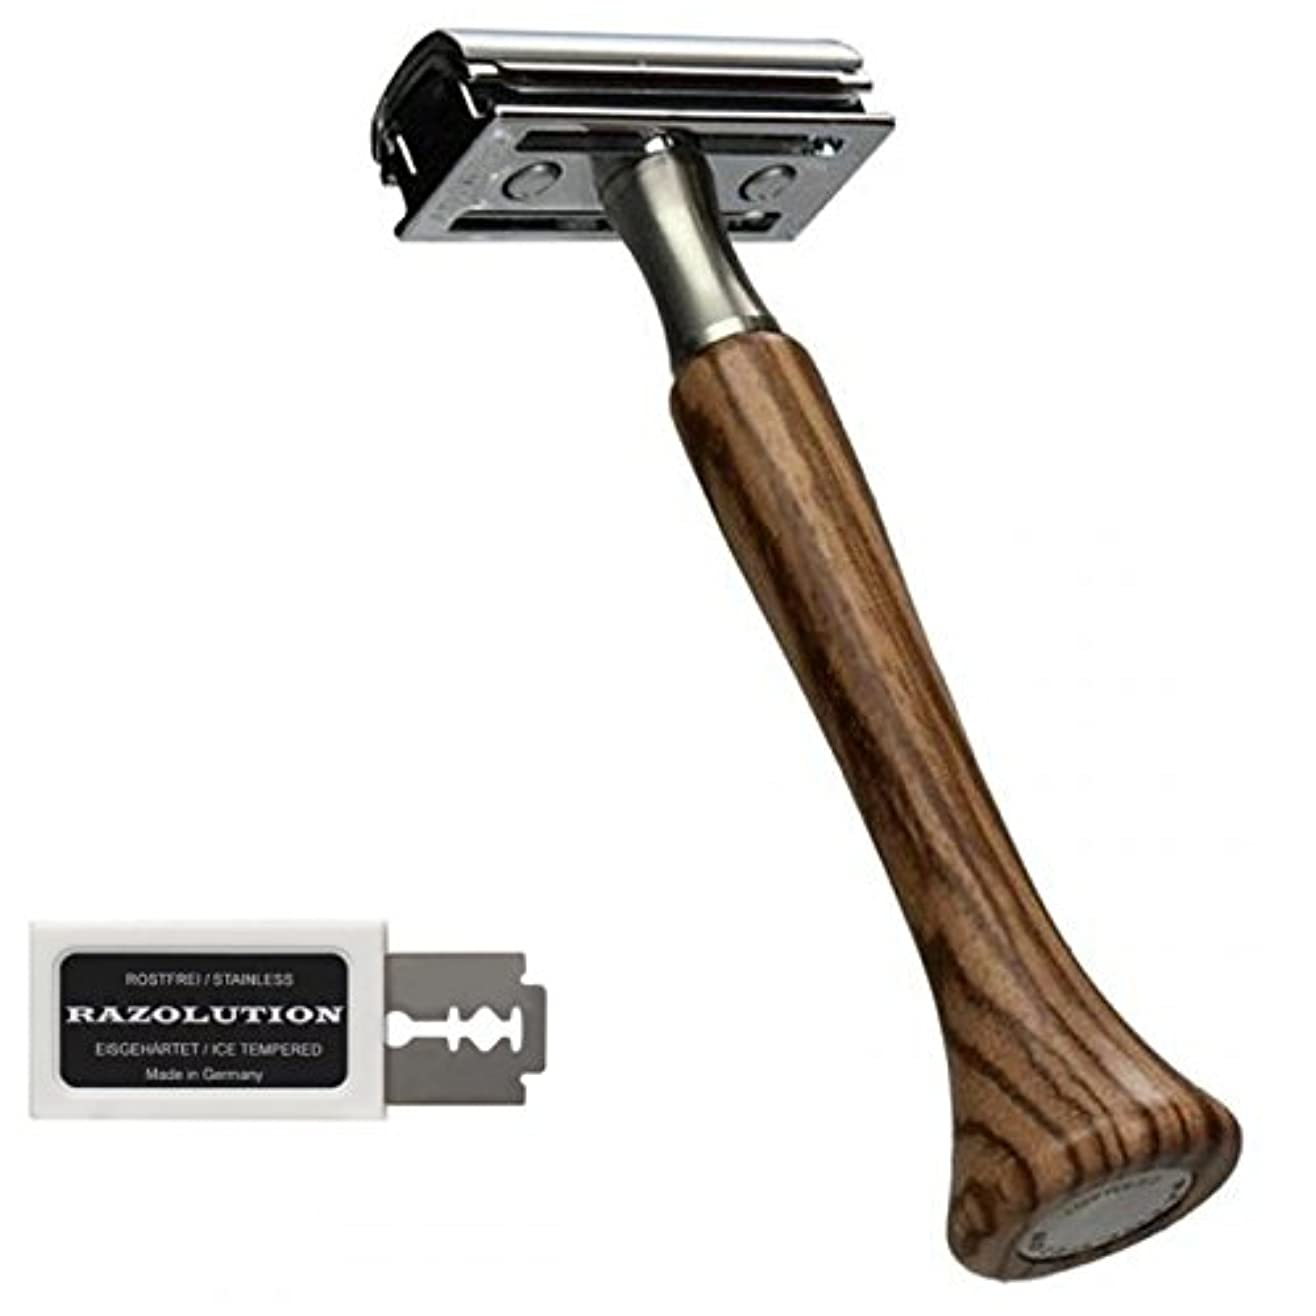 線形名前を作るアソシエイトRAZOLUTION 4Edge Safety razor, Zebrano handle